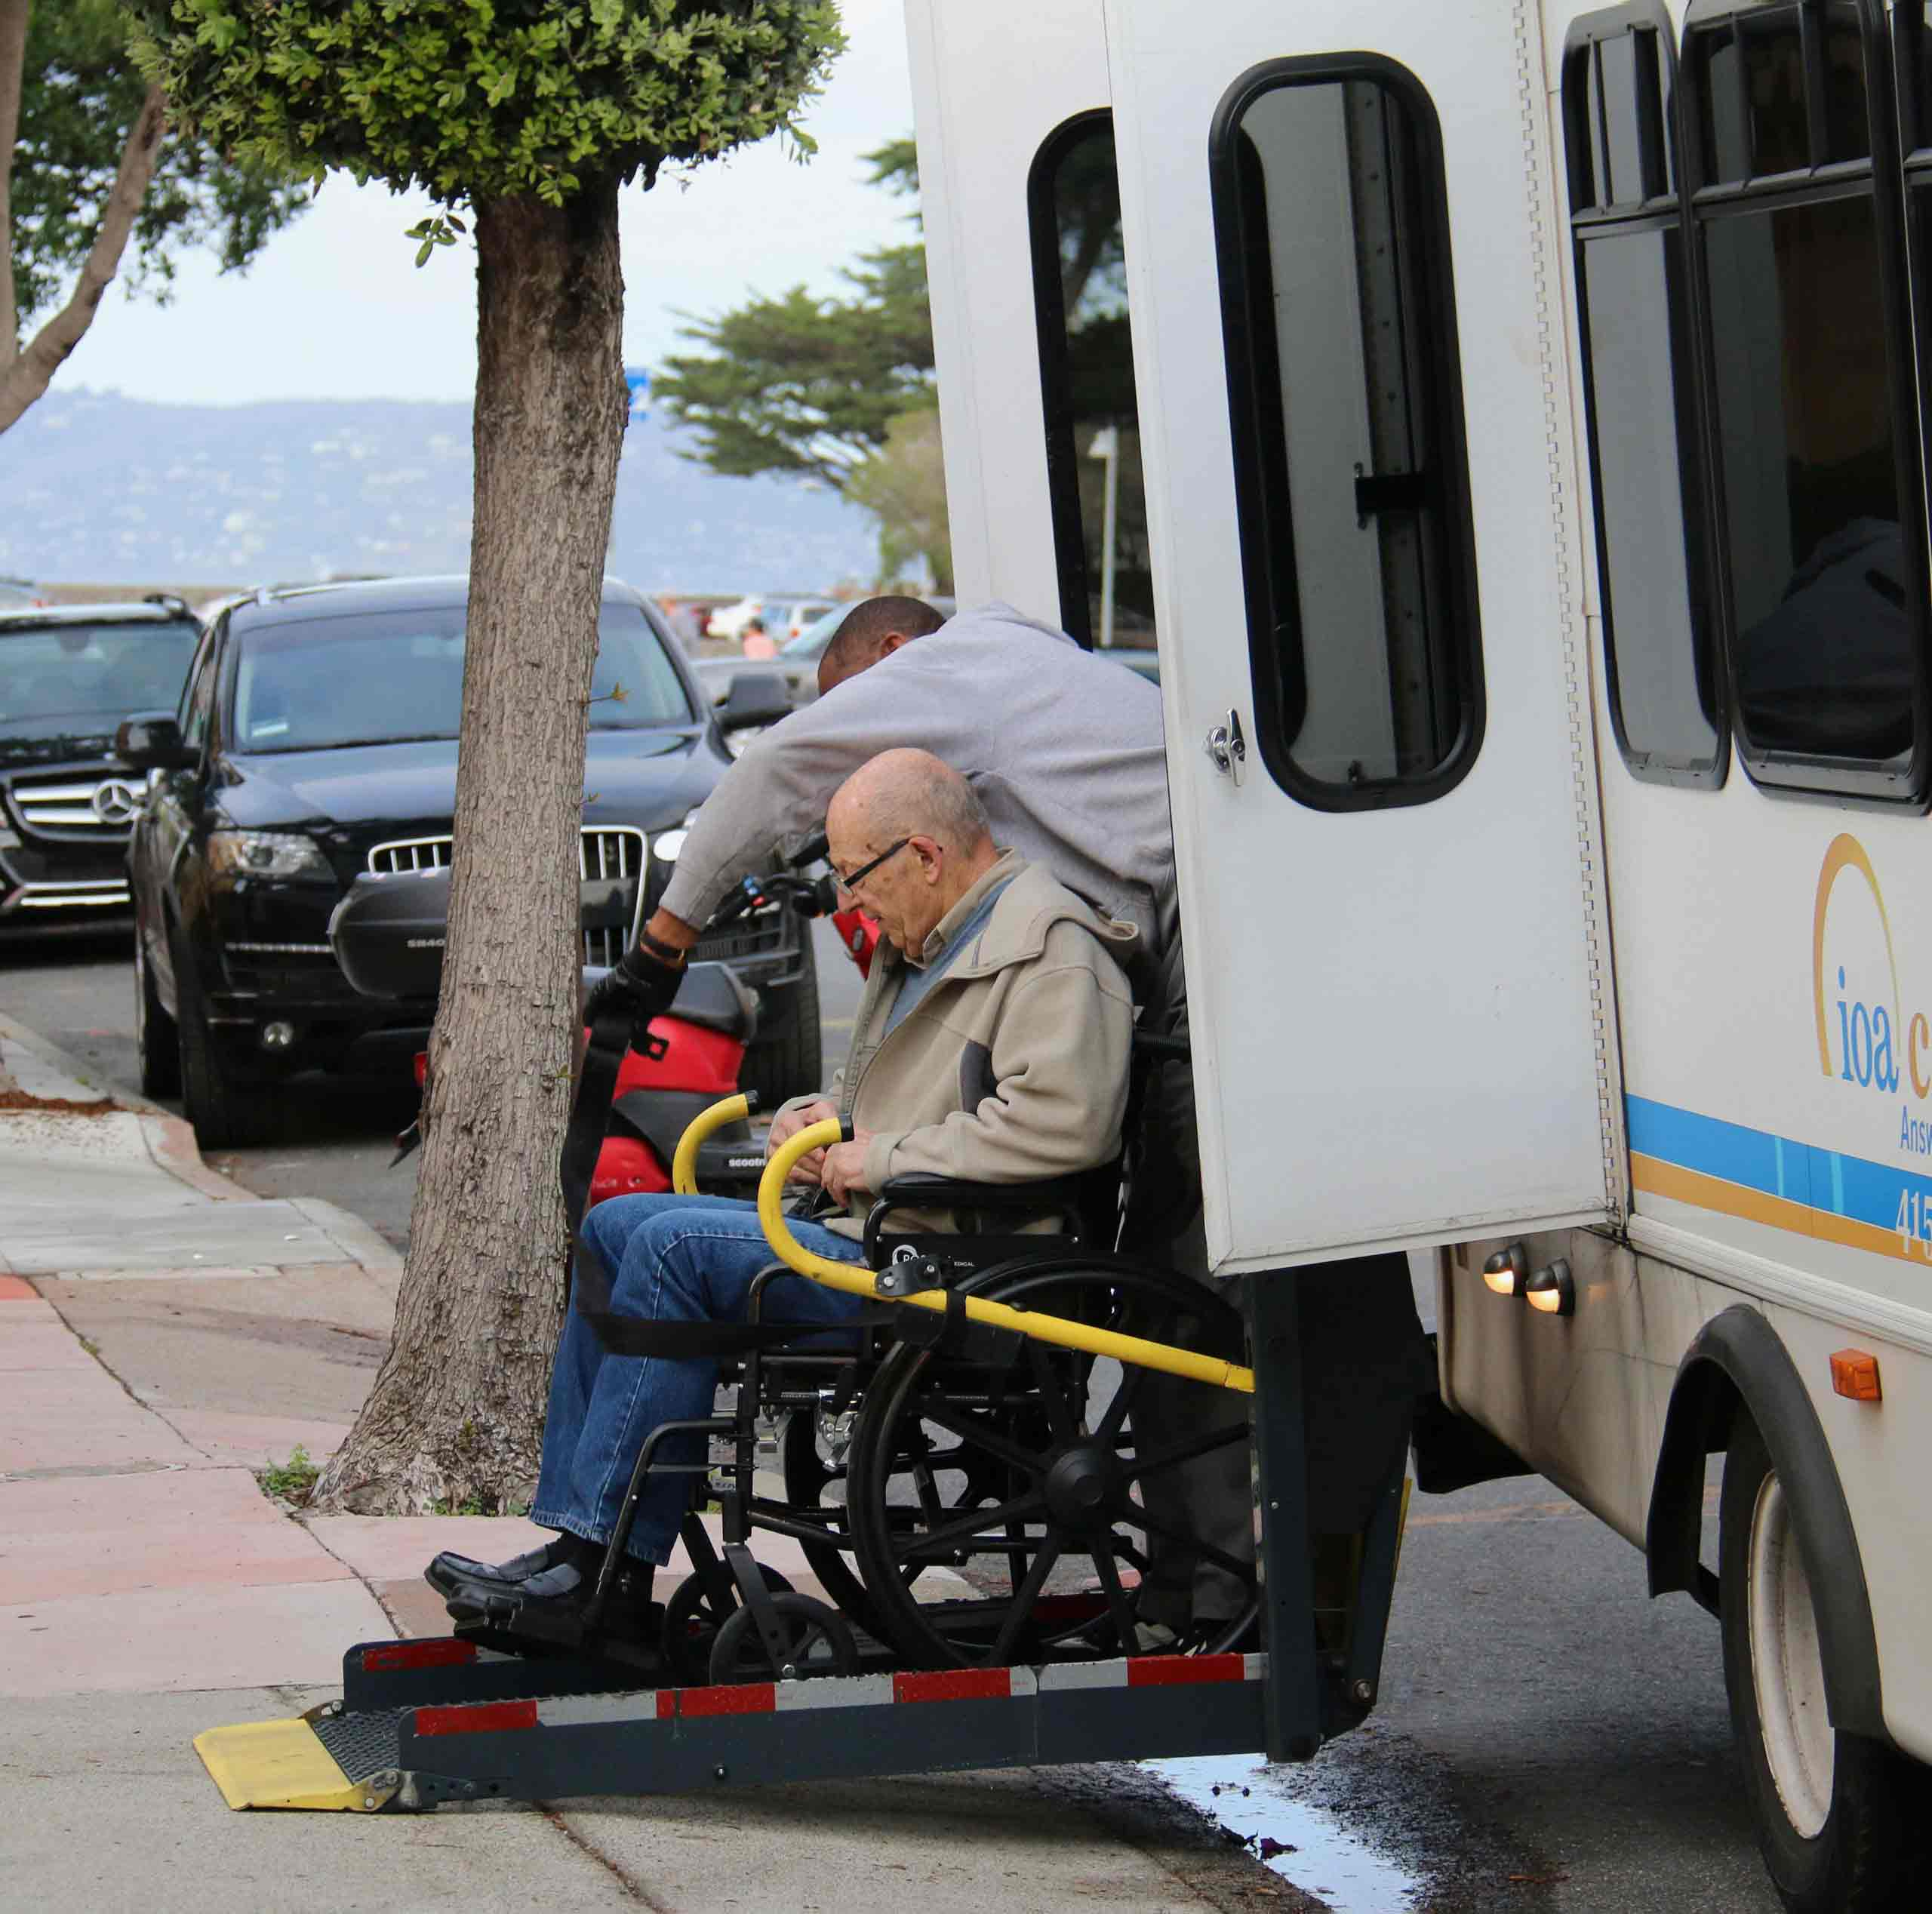 Man in a wheelchair is assisted to get off a van using a lift in San Francisco